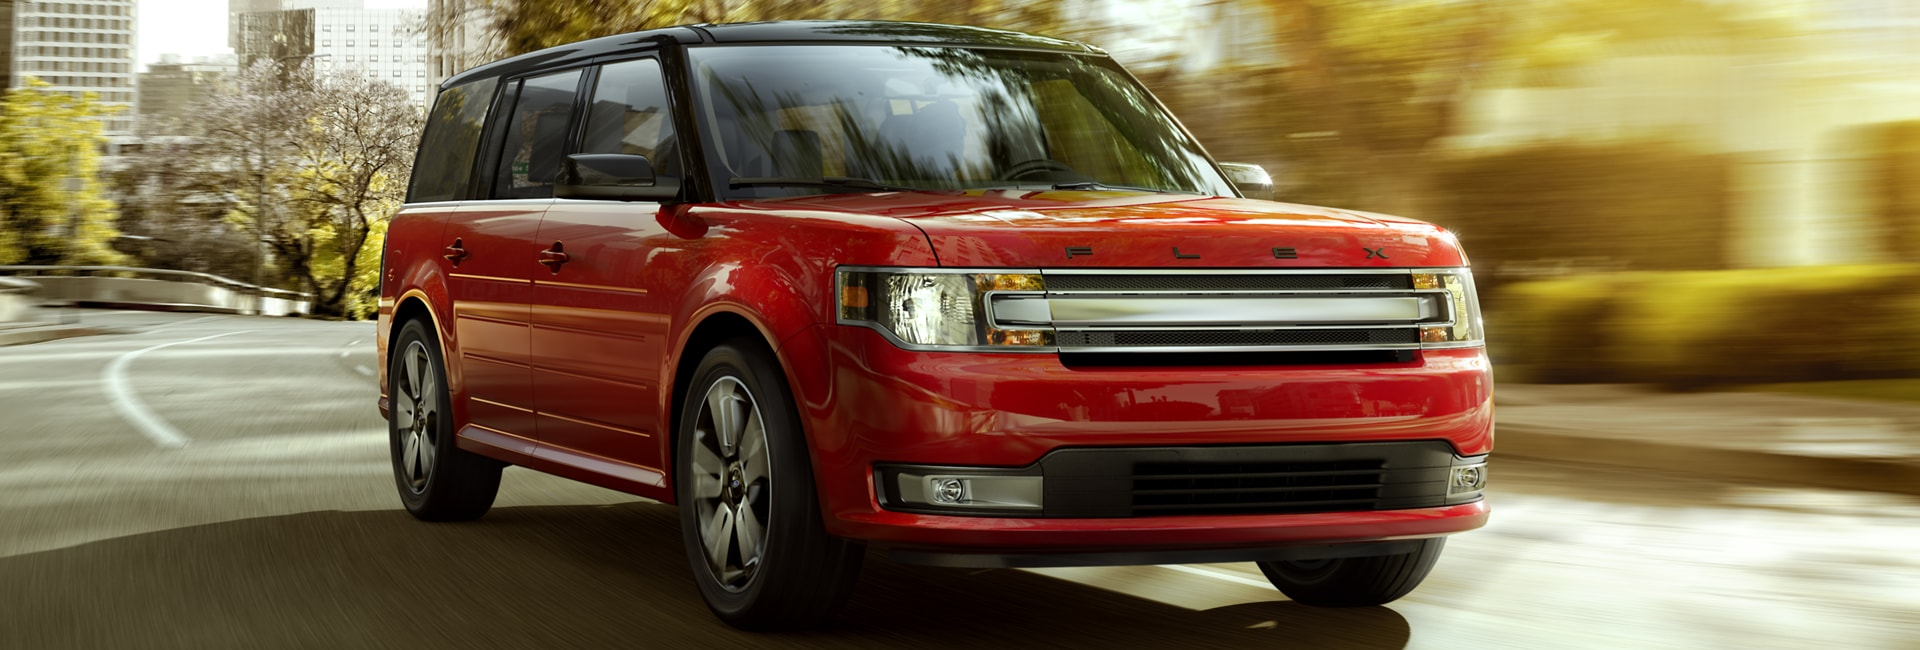 Lithia Ford Missoula >> Ford Flex Specials & Lease Offers | Lithia Ford of Missoula